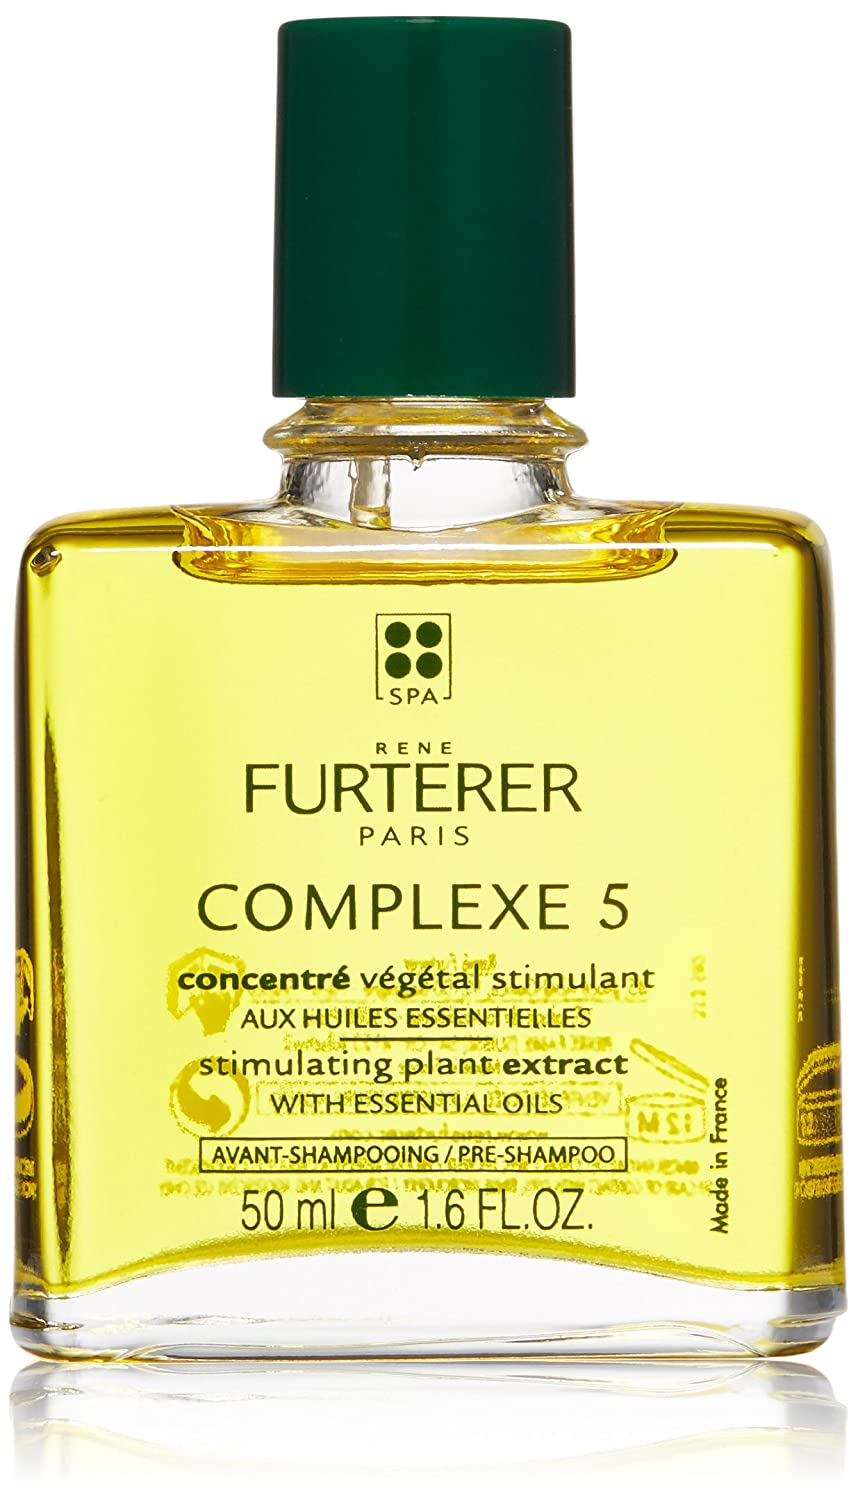 RENE FURTERER COMPLEXE 5-50ml Botella: Amazon.es: Belleza